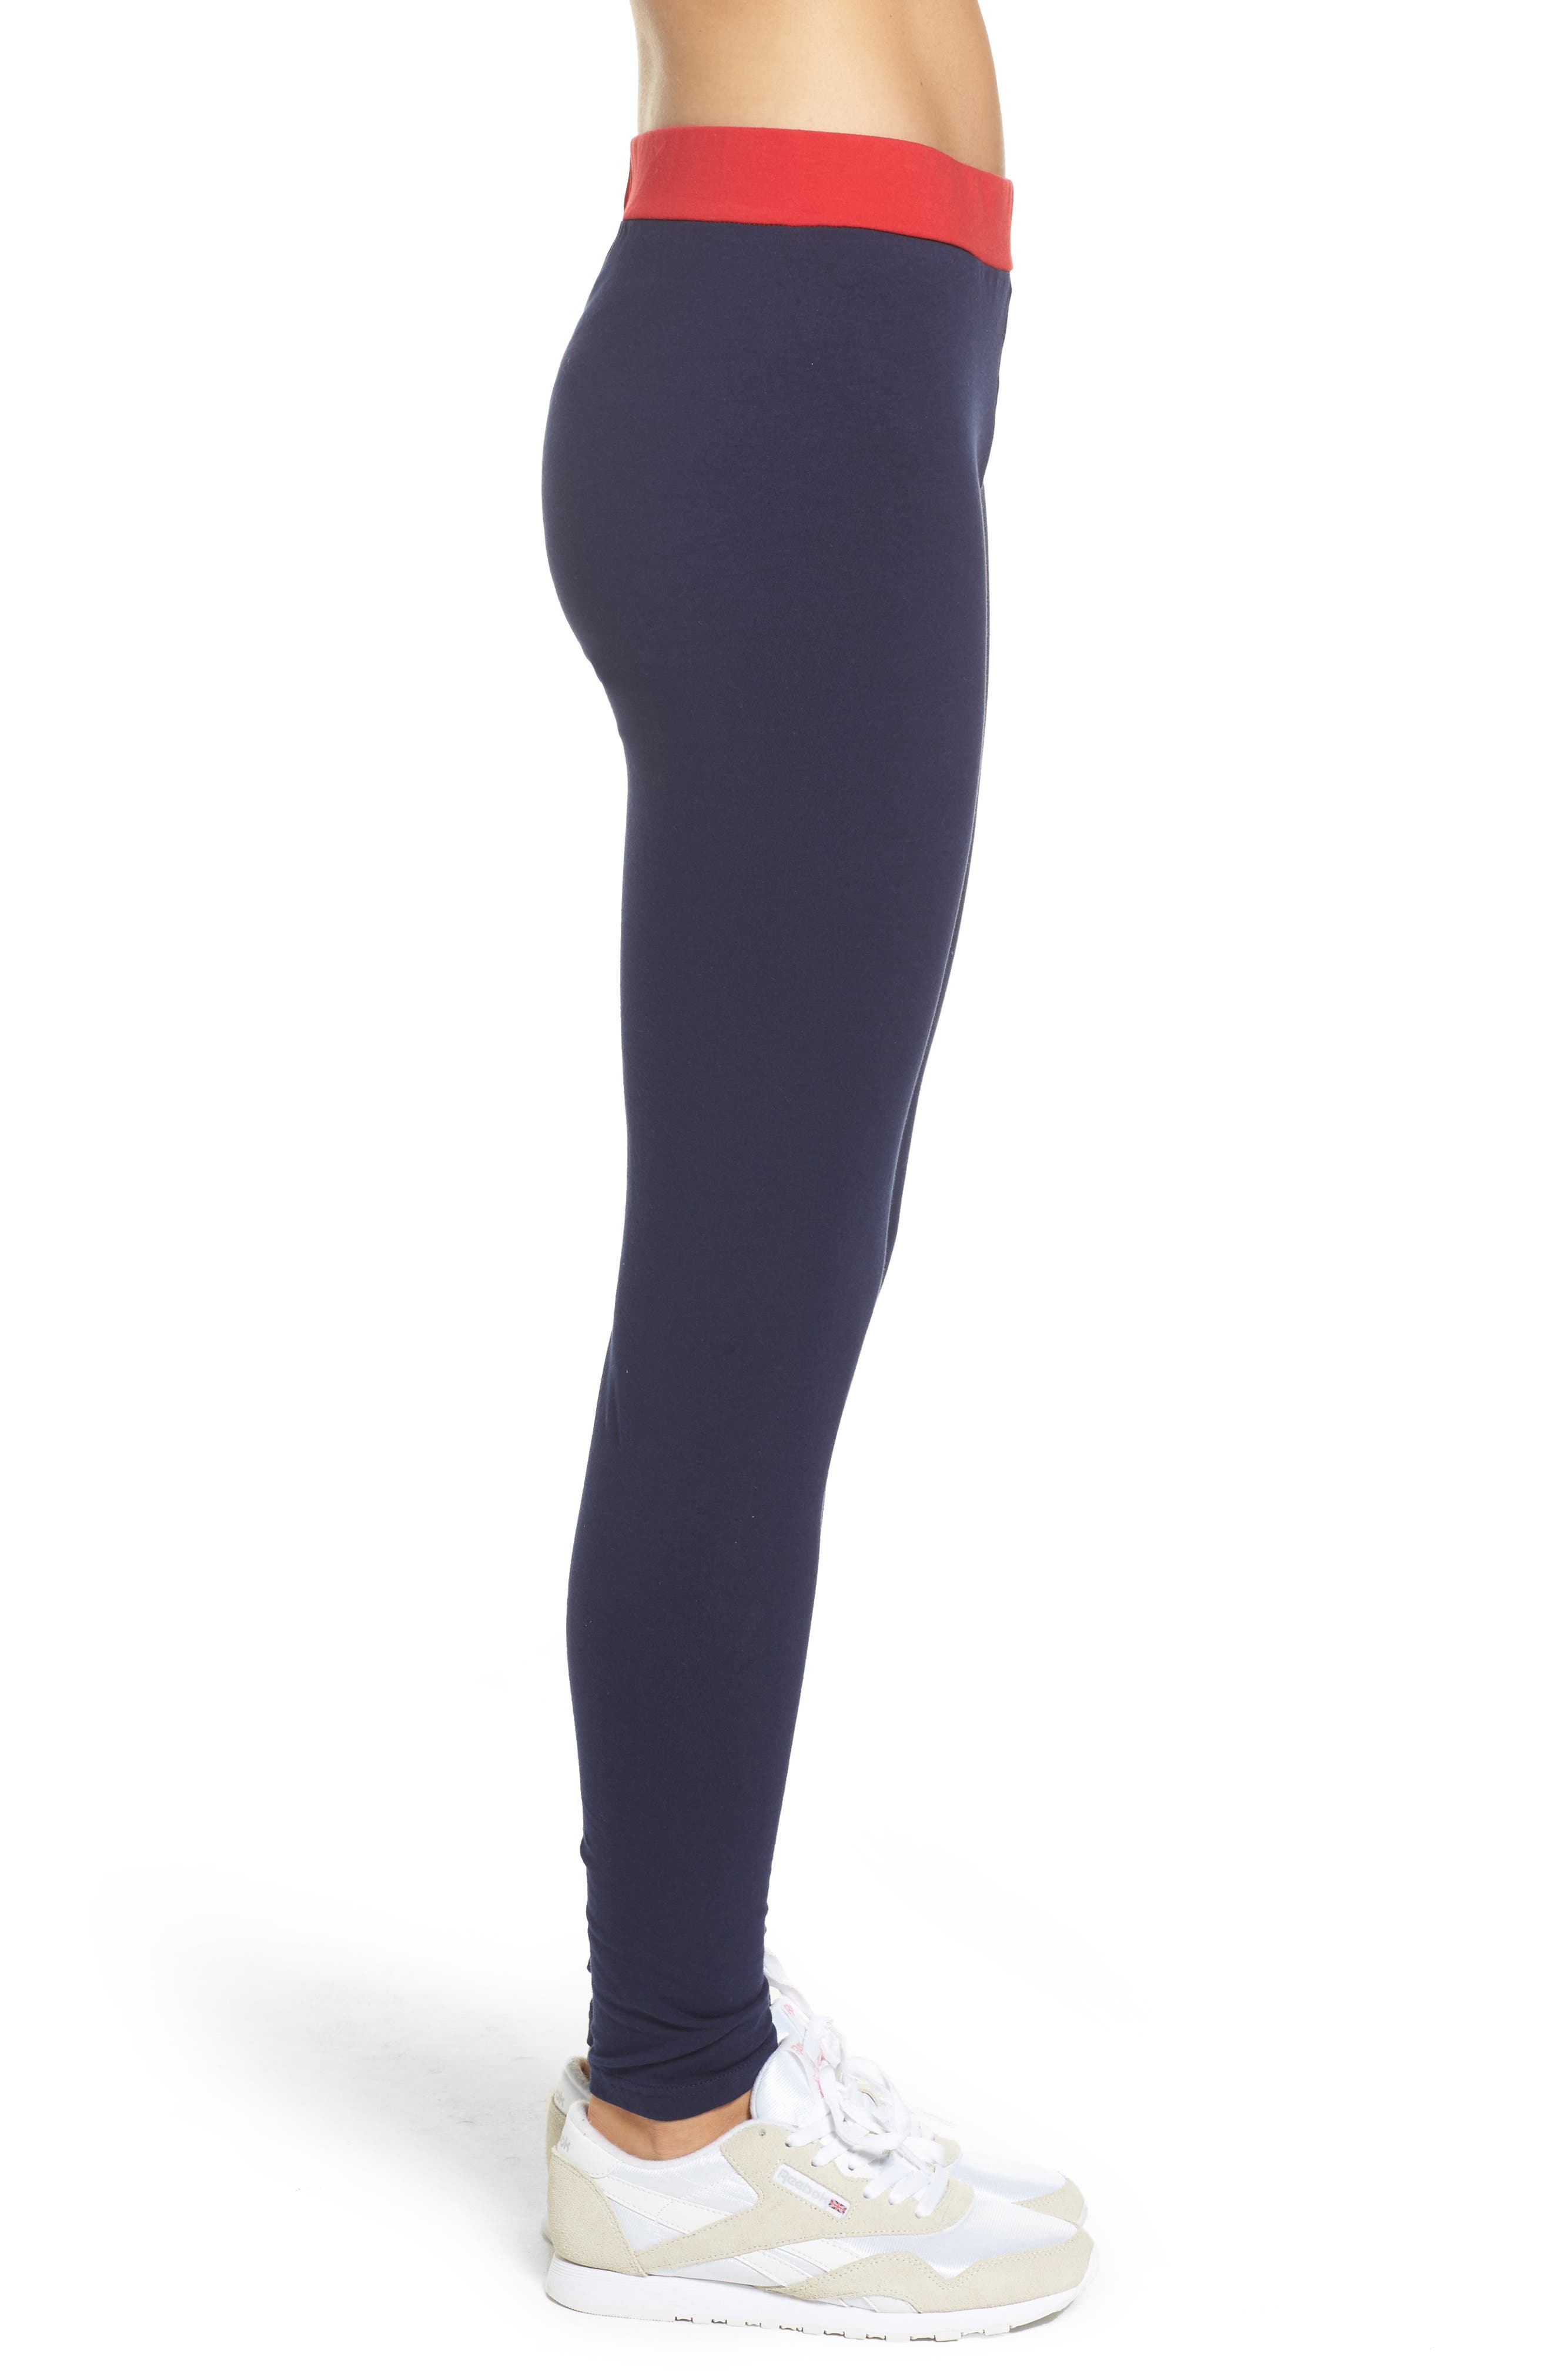 Imelda Training Tights,                             Alternate thumbnail 3, color,                             Navy/ Chinese Red/ White